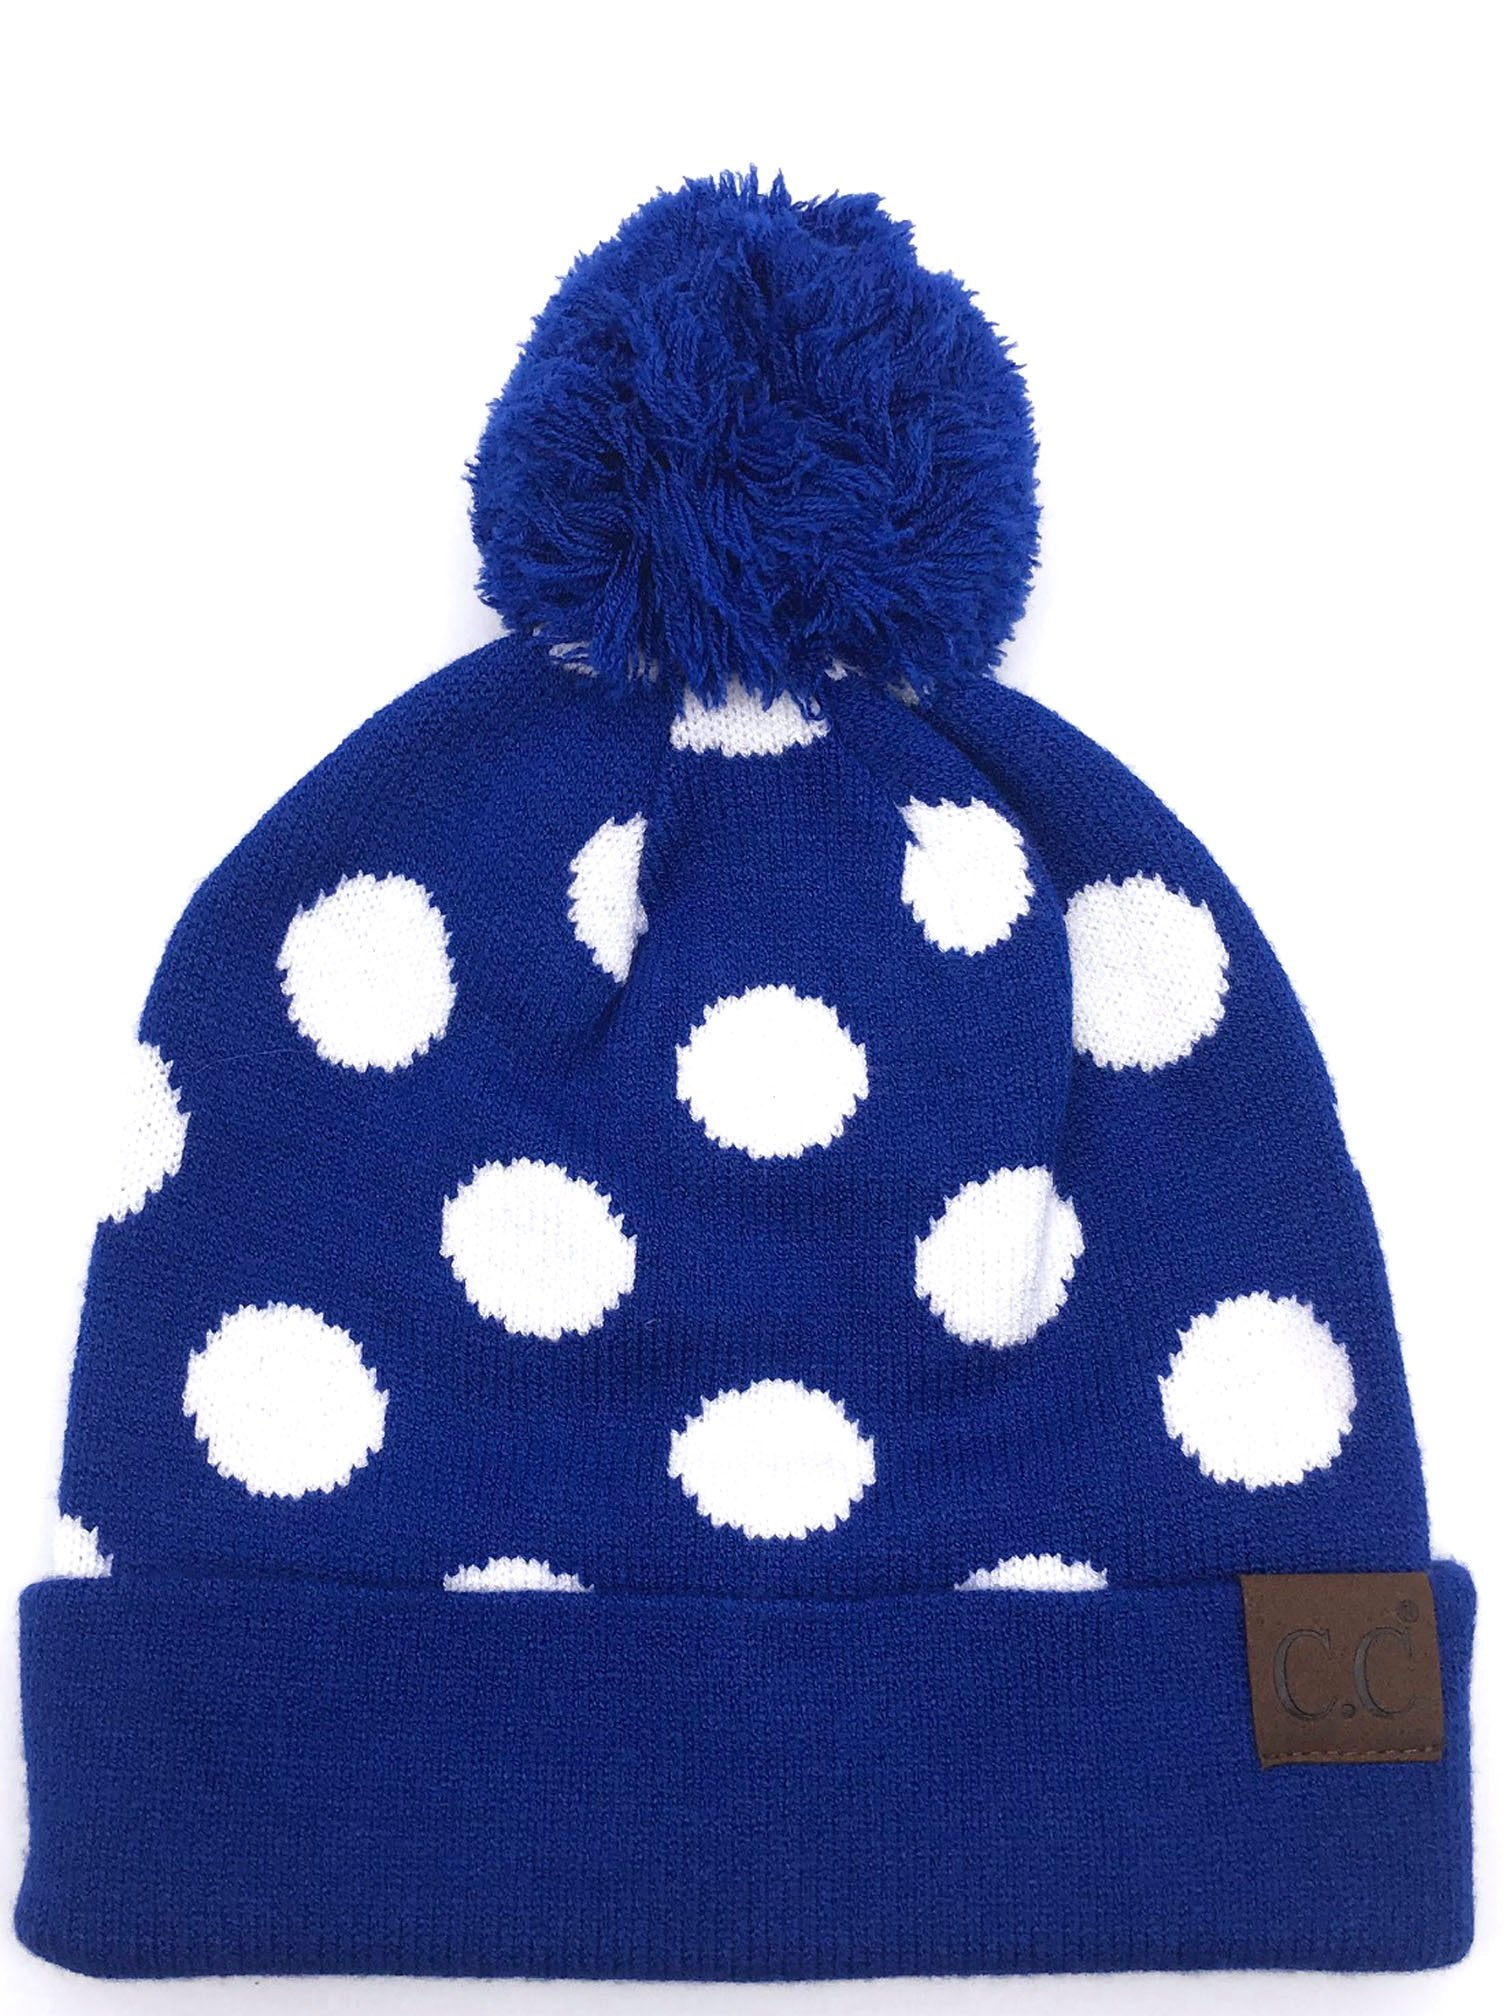 PD-21 Hat Polka Dot Beanie Royal/White